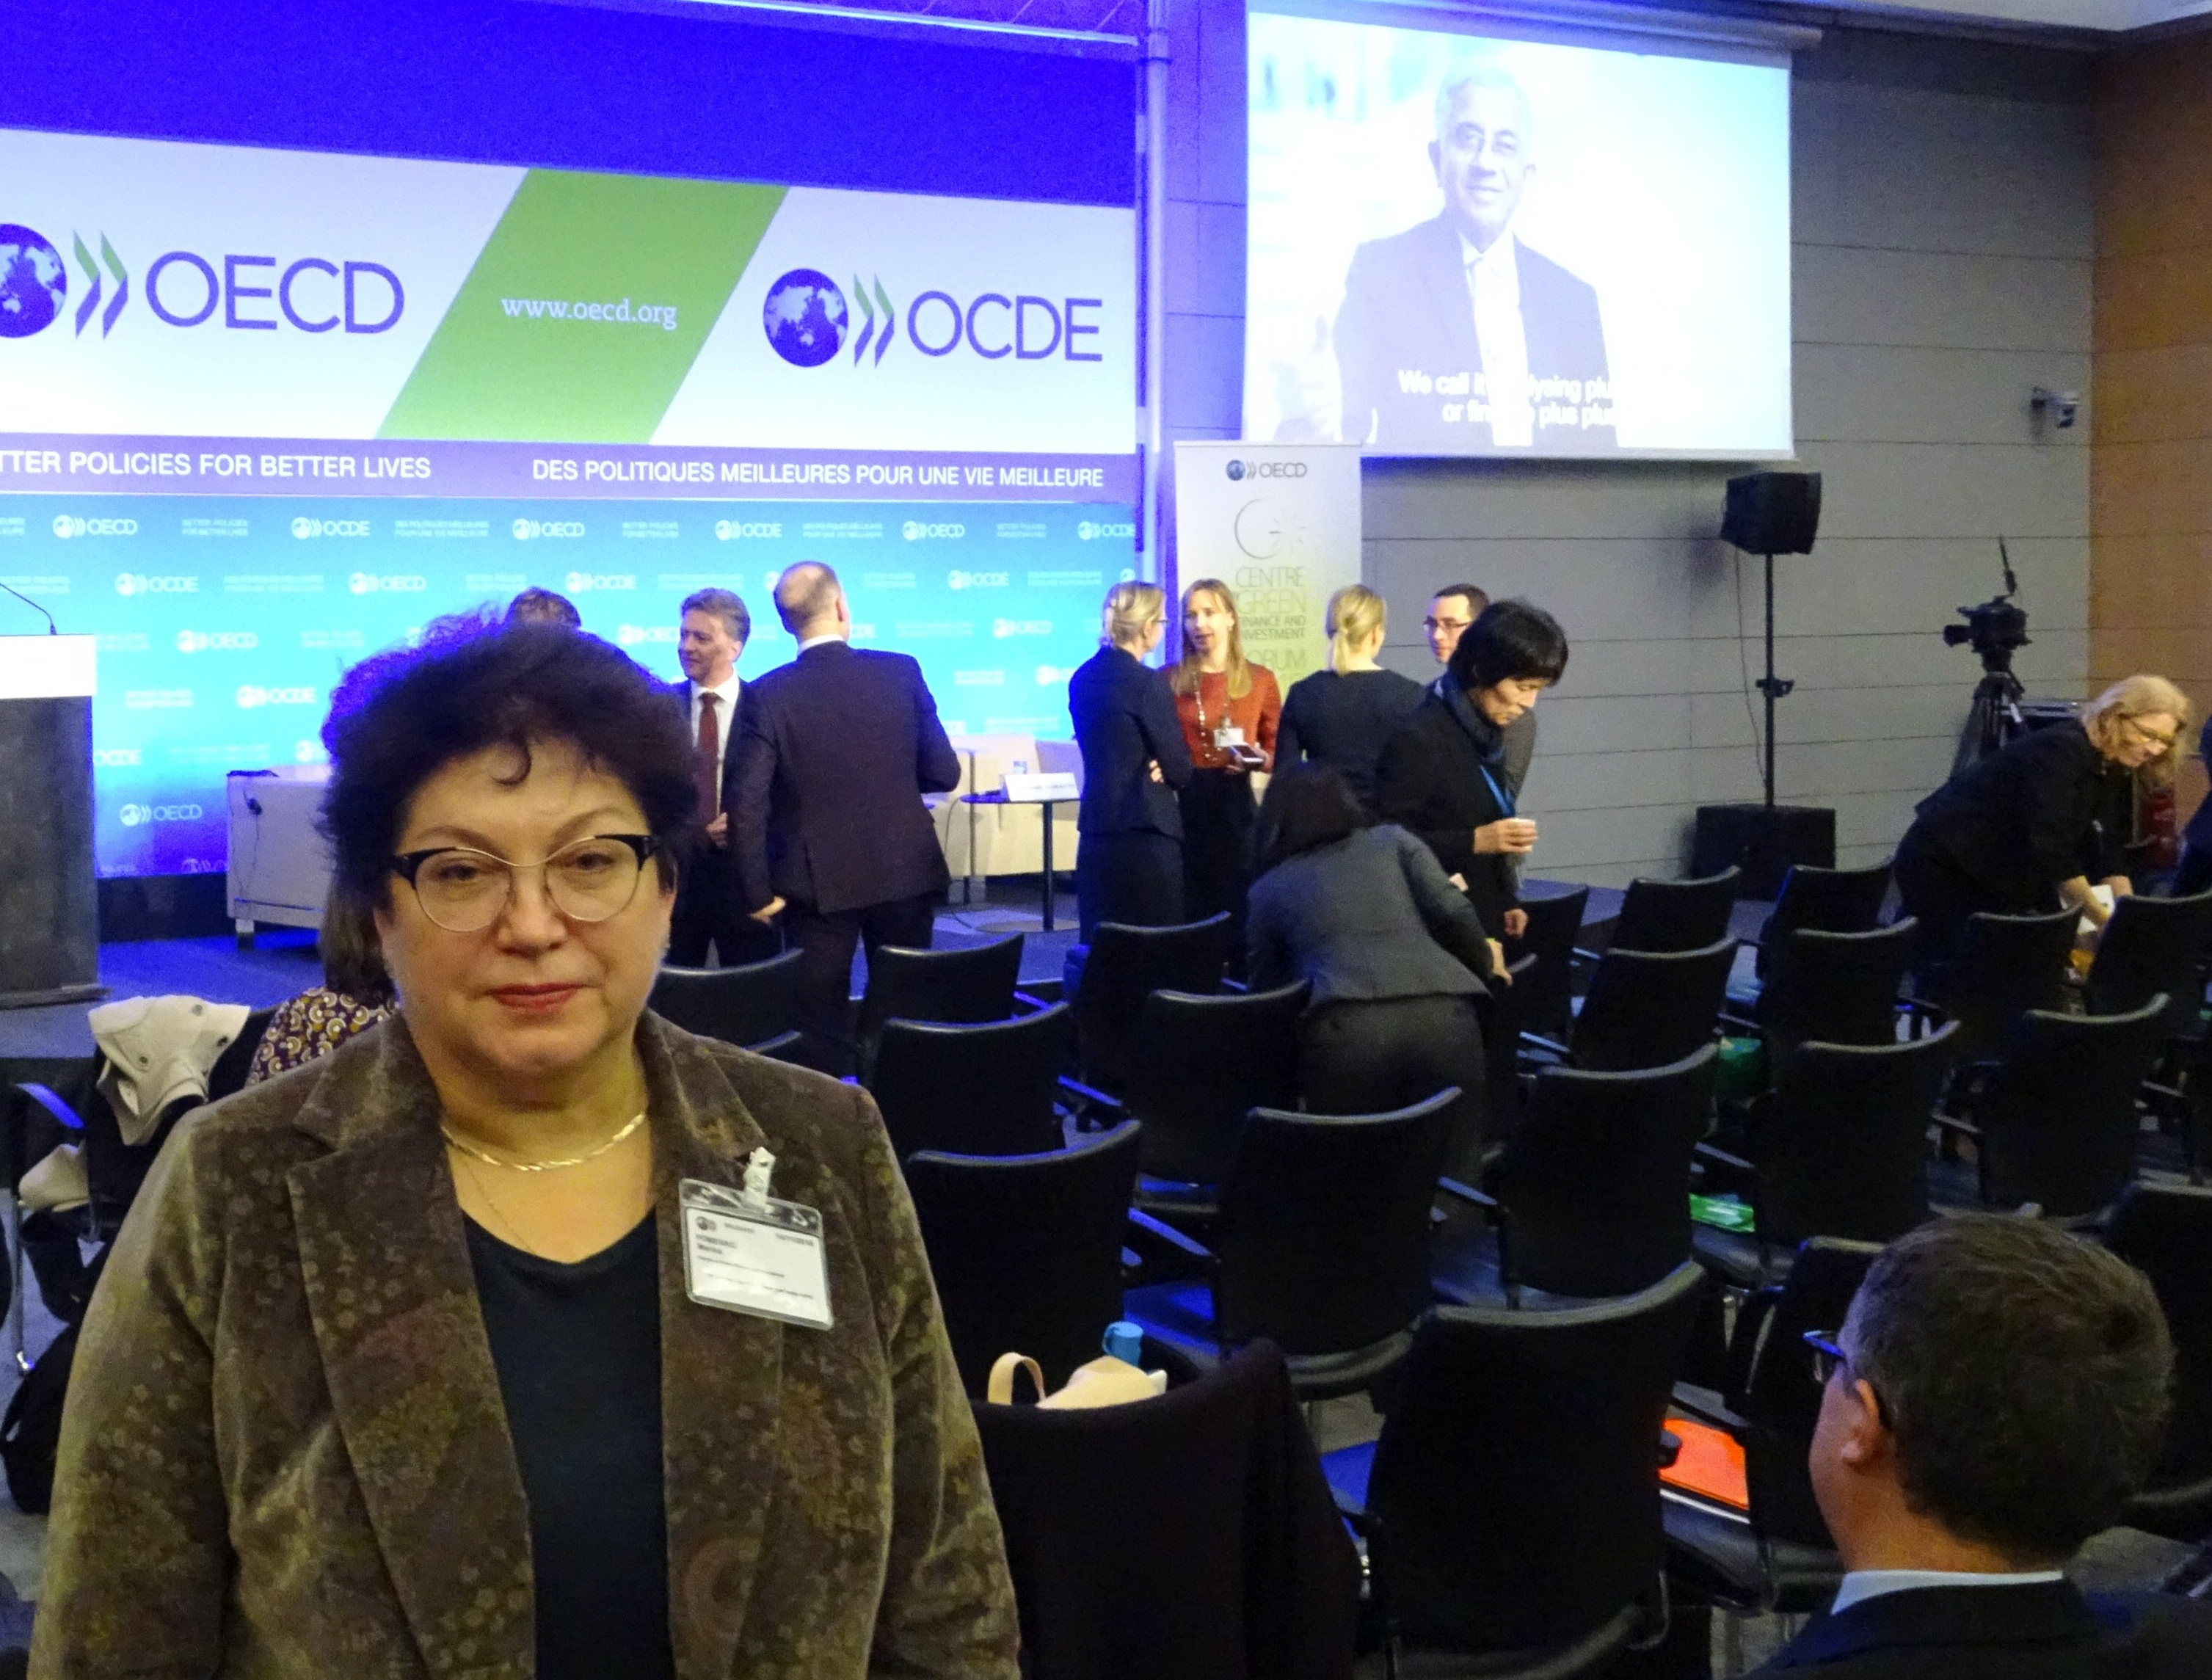 OECD Forum on Green Finance and Investments was held in Paris